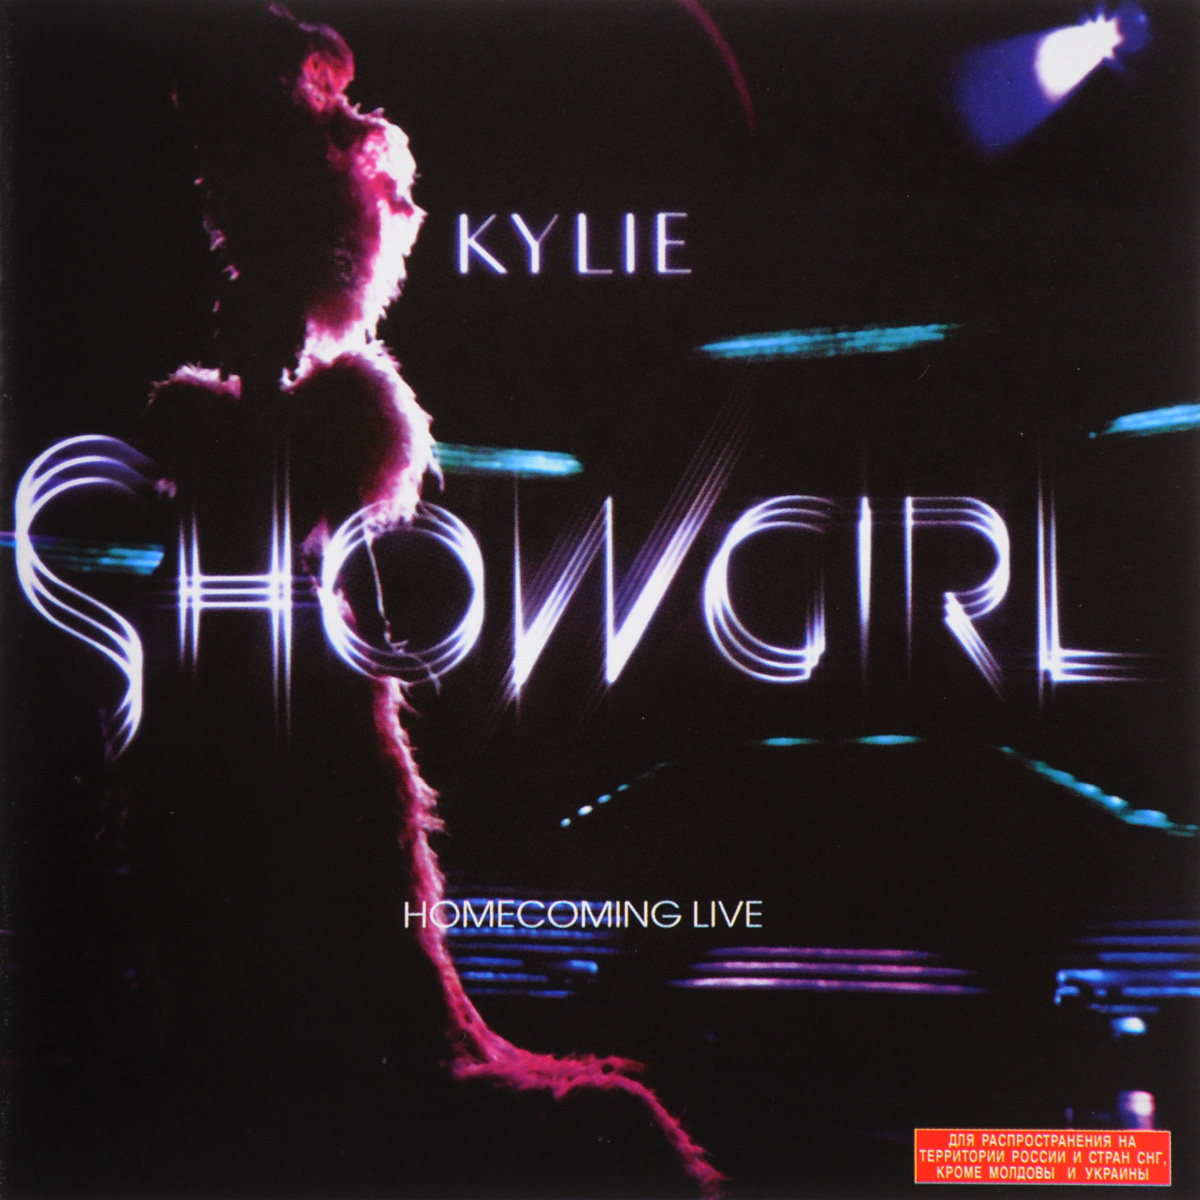 Кайли Миноуг,Bono Kylie Minogue. Showgirl. Homecoming Live (2 CD) cd диск minogue kylie kylie christmas snow queen edition 1cd